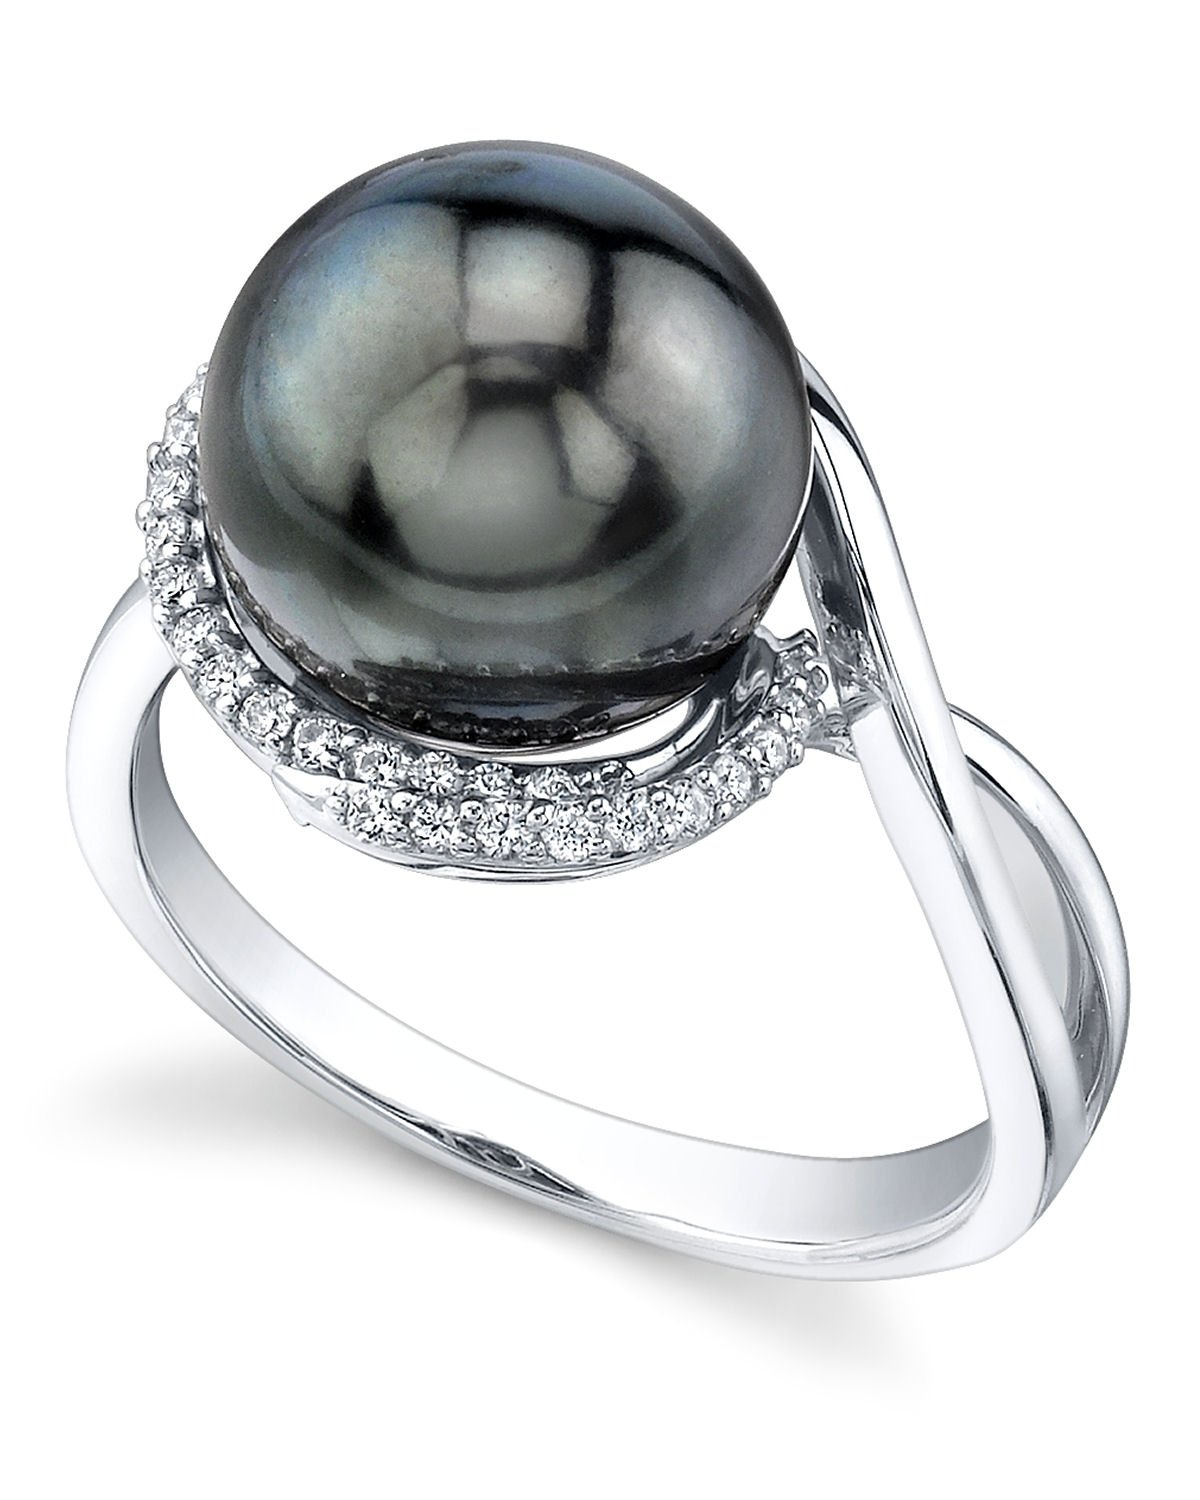 10mm Tahitian South Sea Cultured Pearl & Diamond Summer Ring in 14K Gold